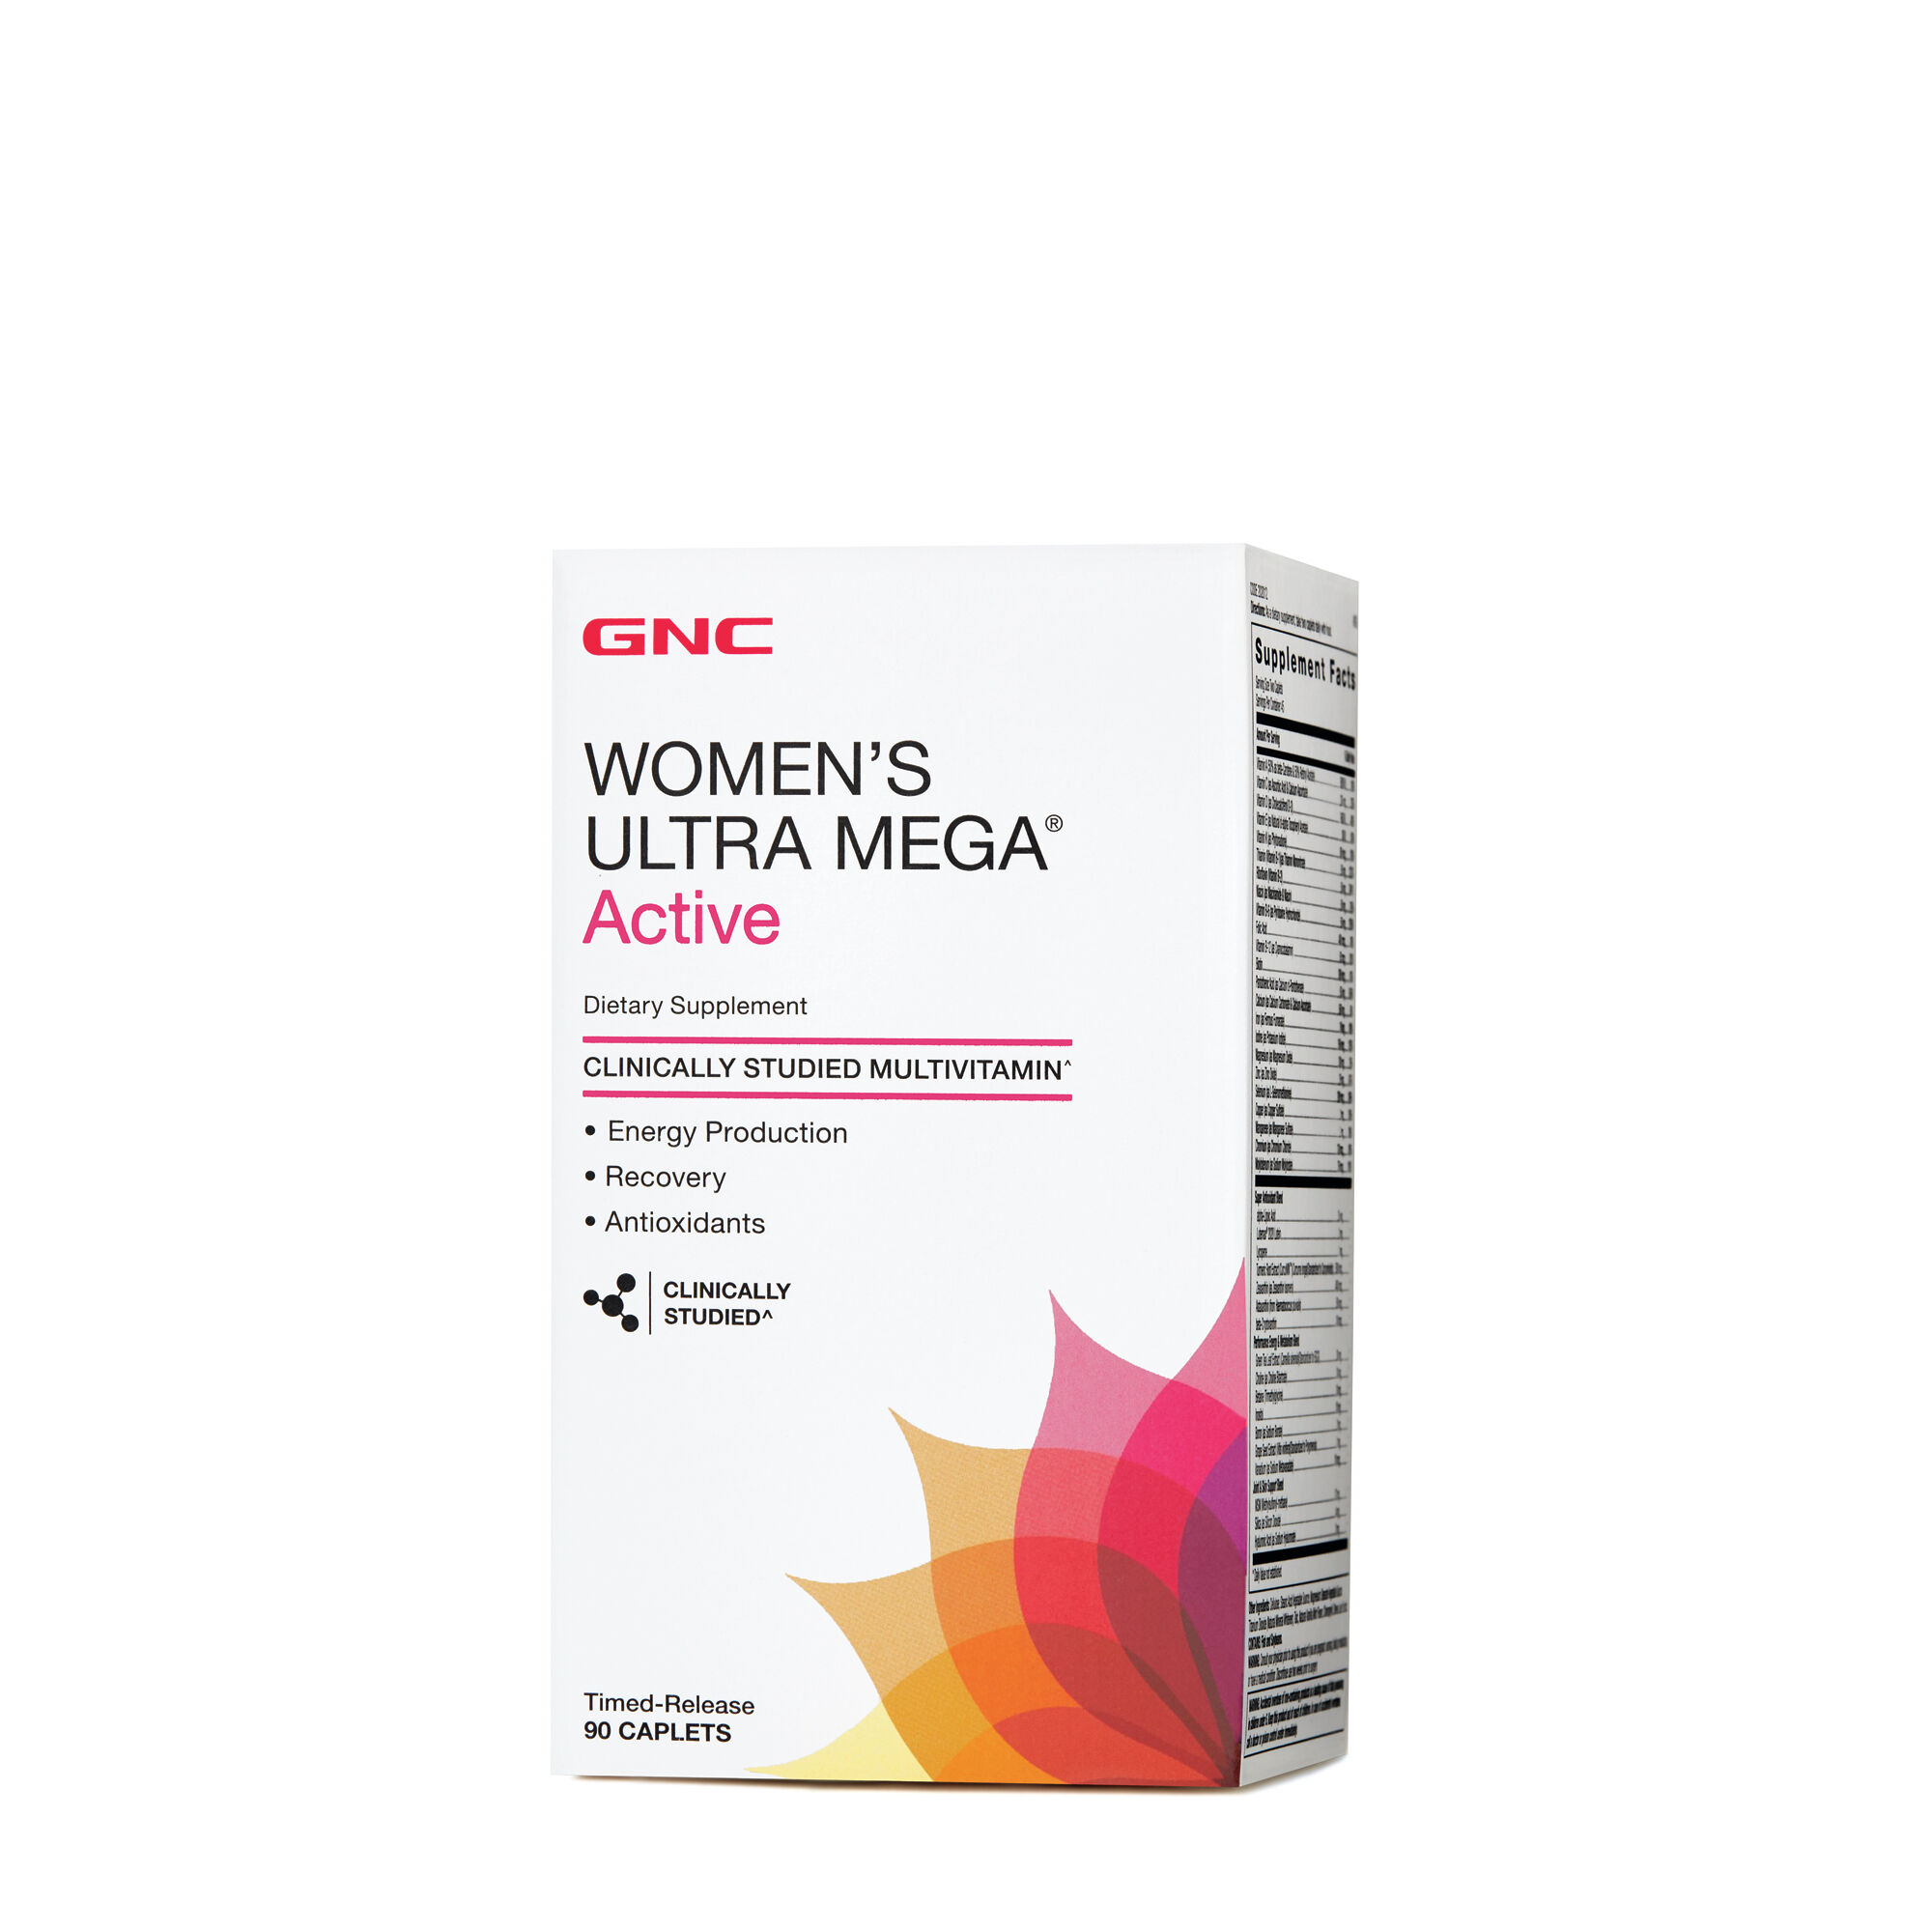 GNC Women's Ultra Mega Active